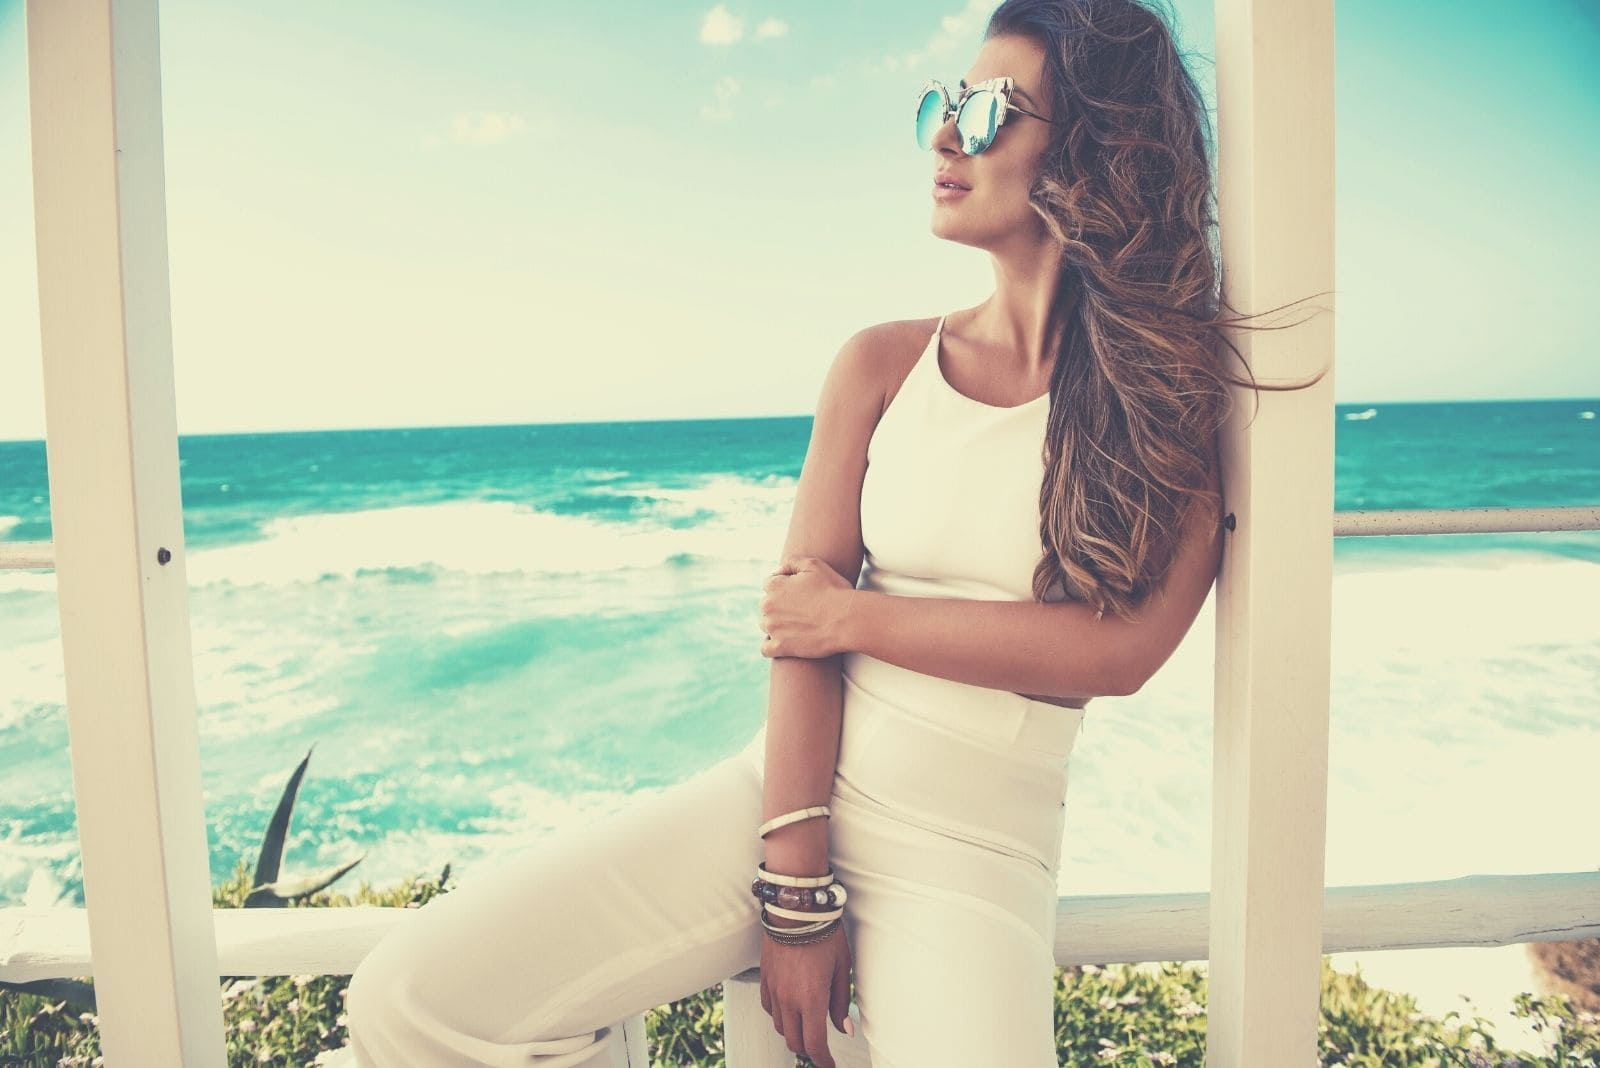 pensive woman on vacation sitting in the railings of a beach house wearing white fashionable dress and sunglasses